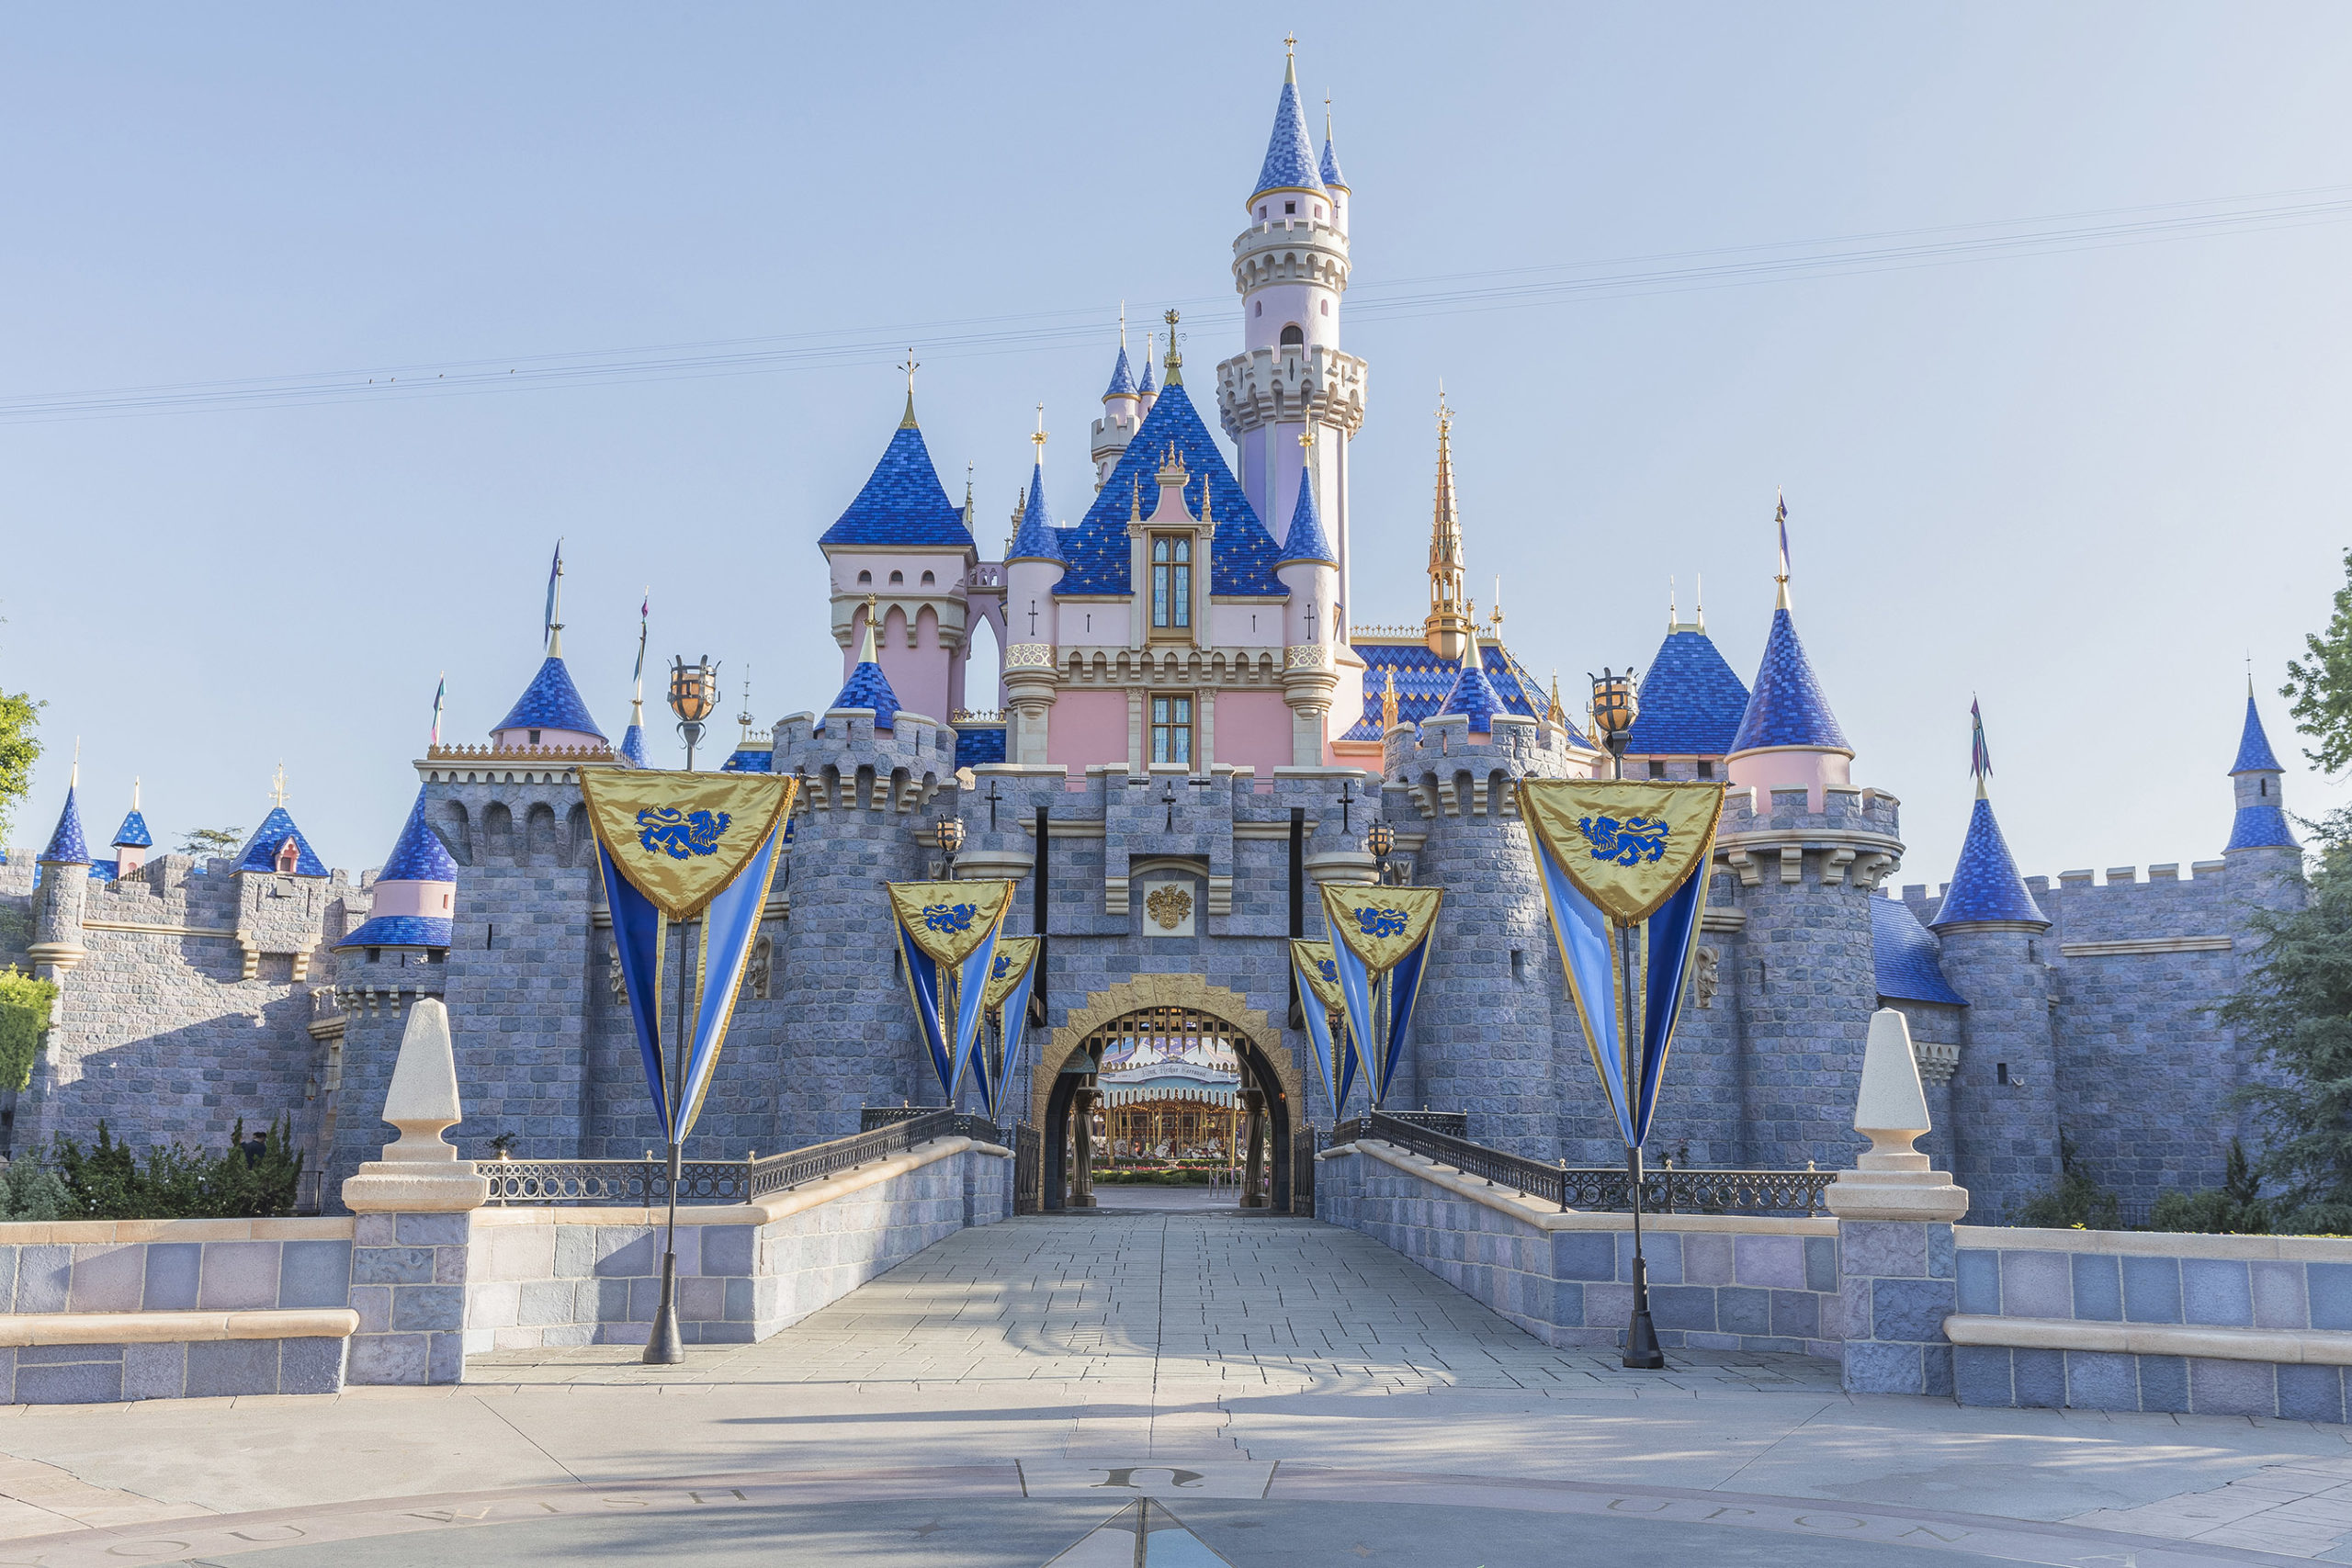 The Walt Disney Company has received encourage news today with a potential reopening of its California theme parks in April.